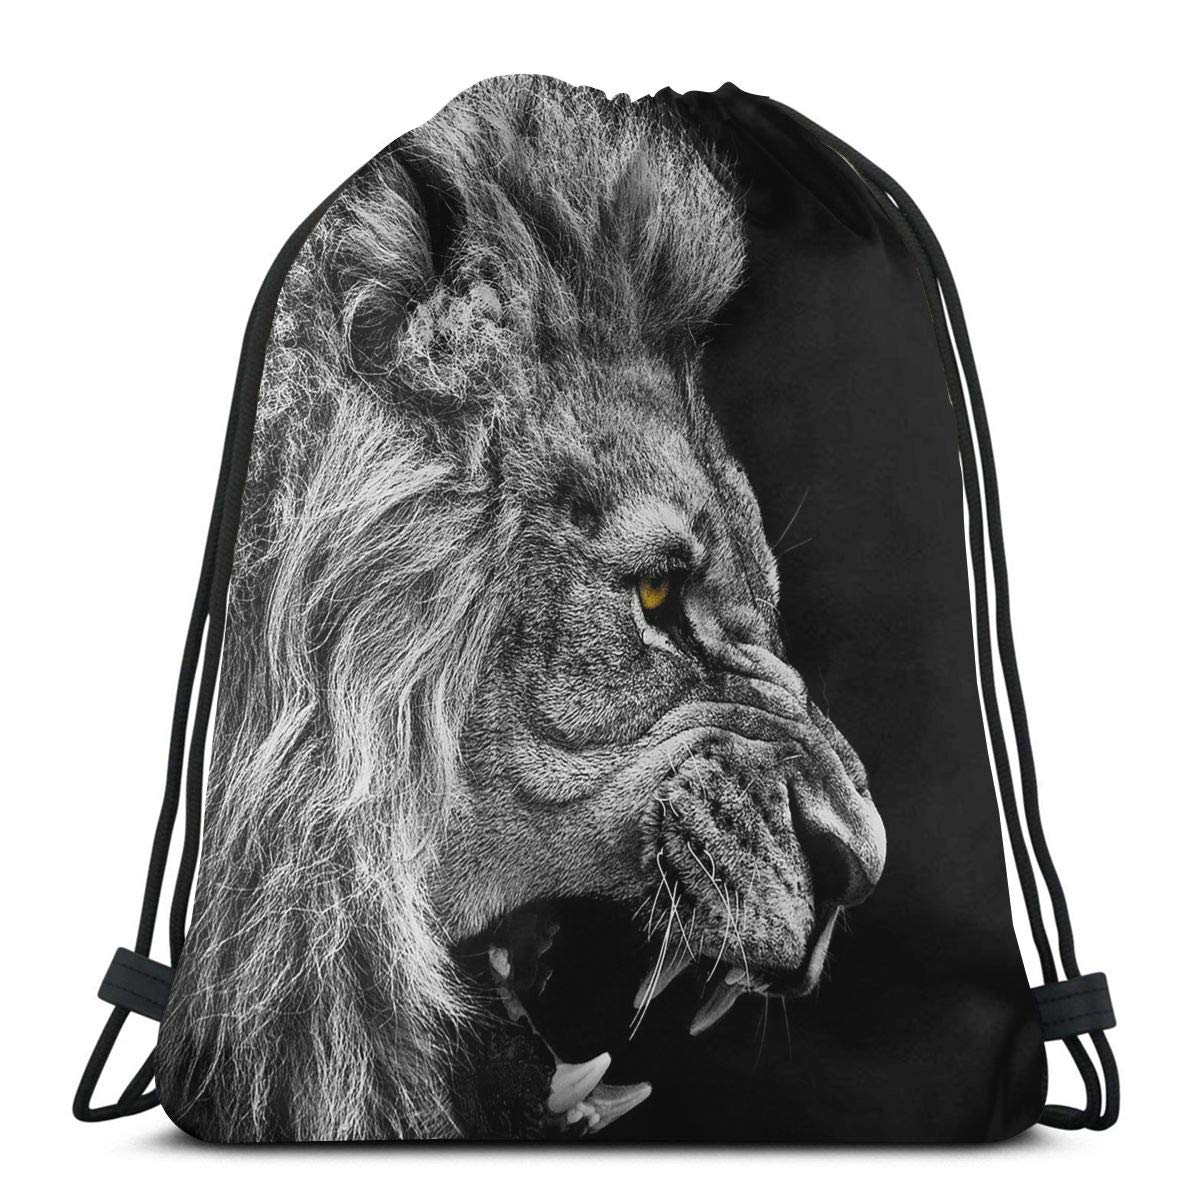 Drawstring Bags Head Of Lion Sport Gym Tennis Casual Daypack Backpacks Swimming Hiking Yoga Portable Travel For Women And Men